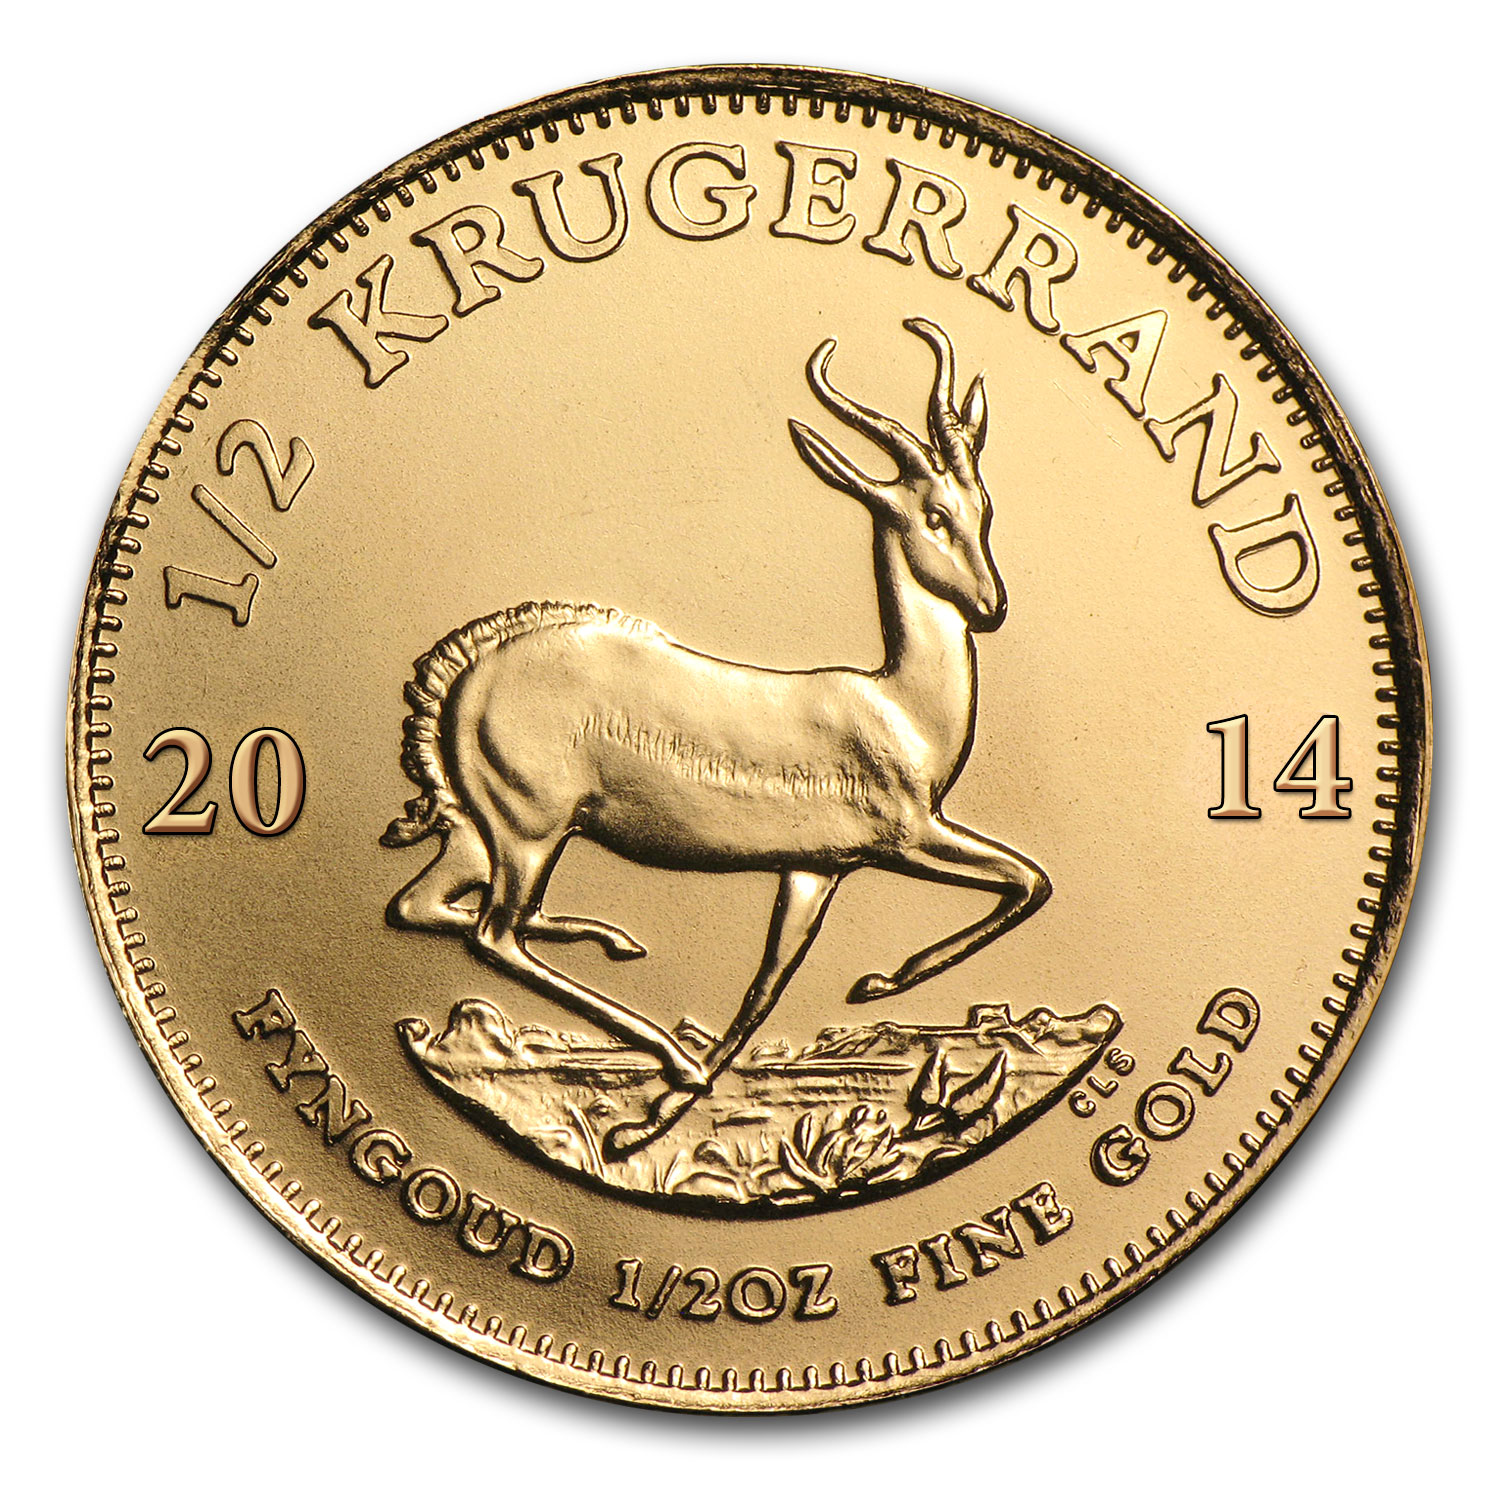 2014 South Africa 1/2 oz Gold Krugerrand